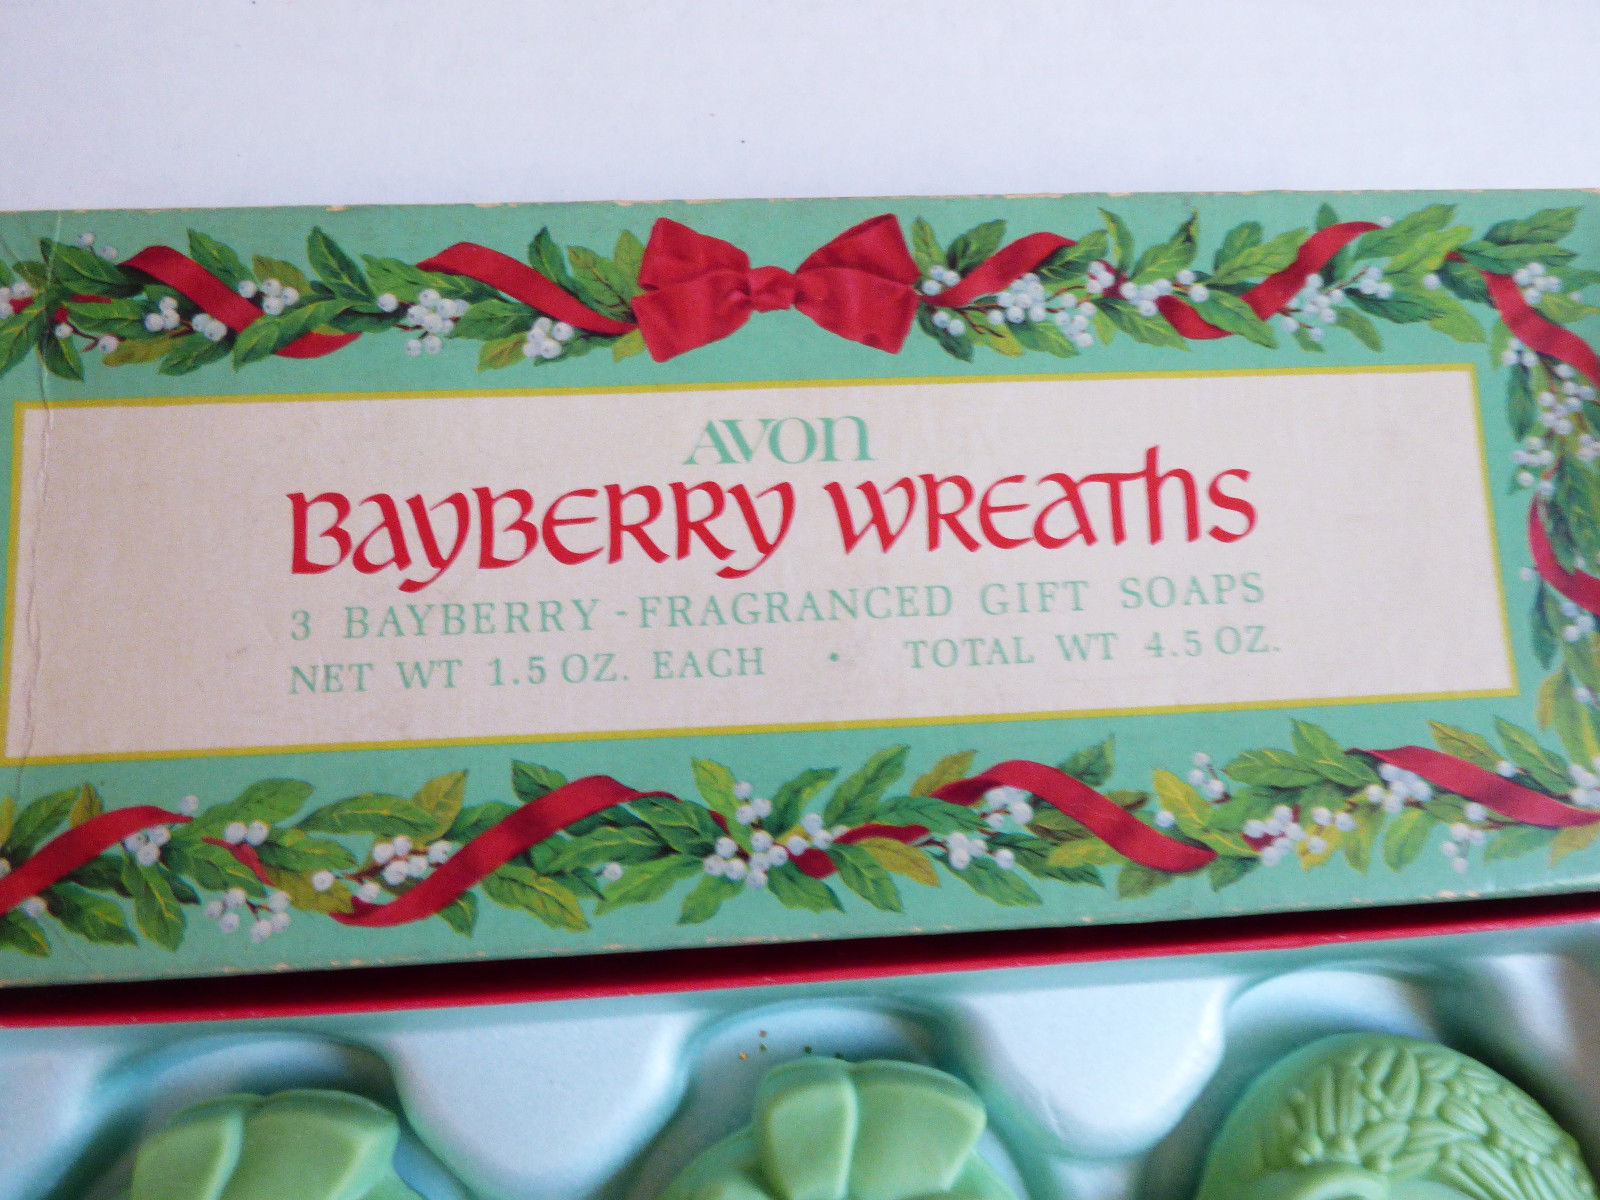 VTG 1970's Rare New in Box 3 pc. Avon Bayberry Wreaths Fragranced Perfume Soap